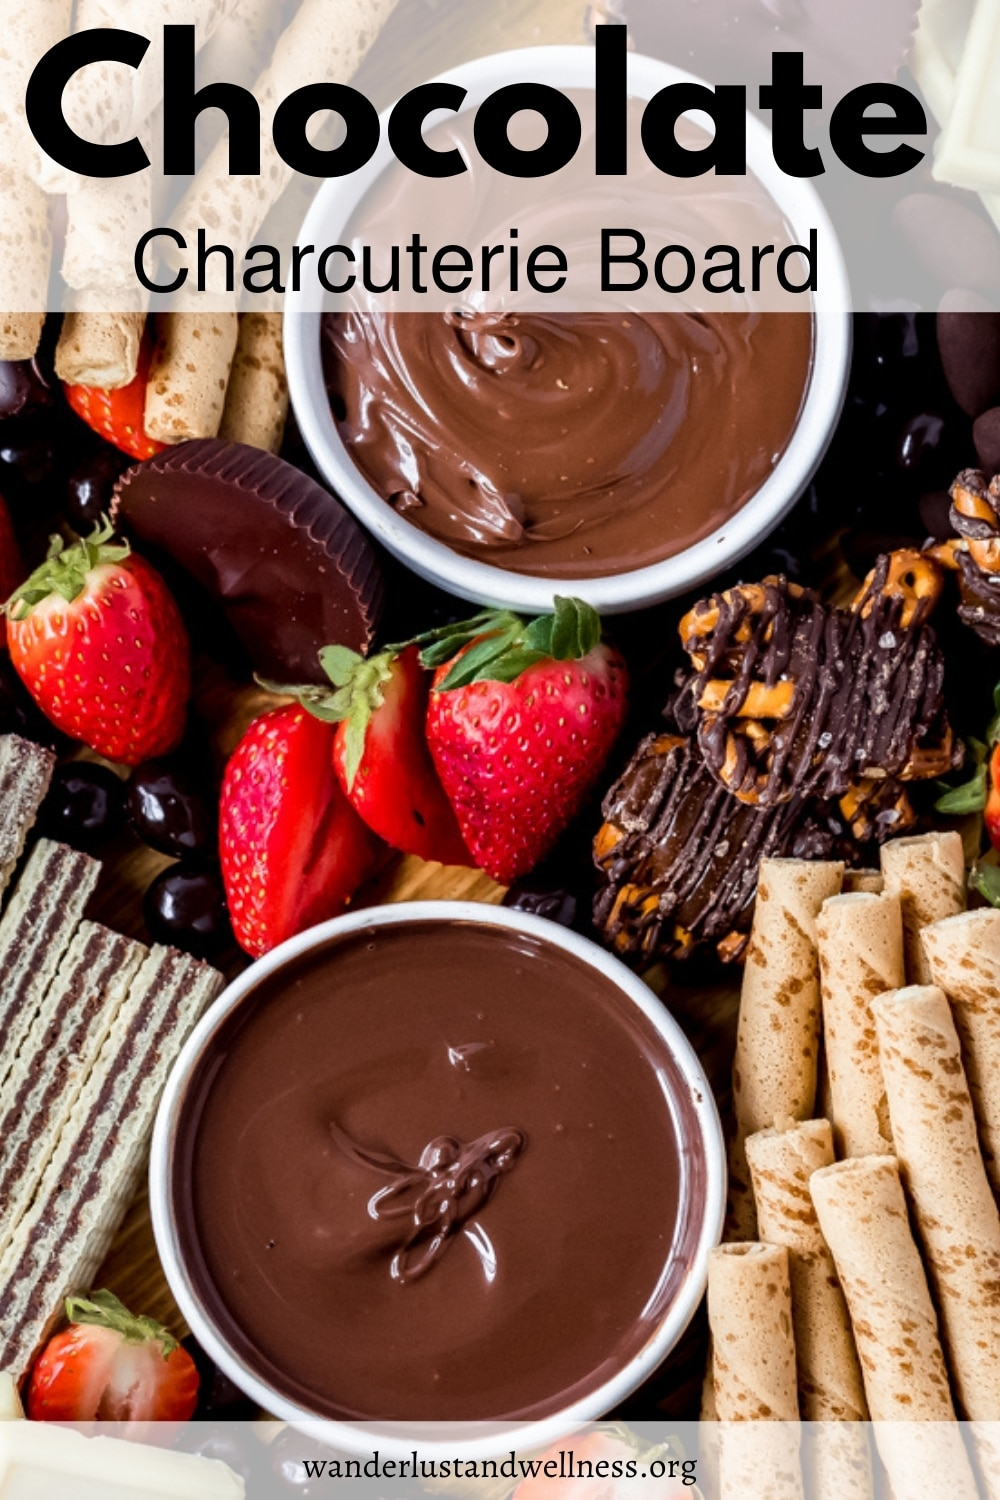 a chocolate charcuterie board